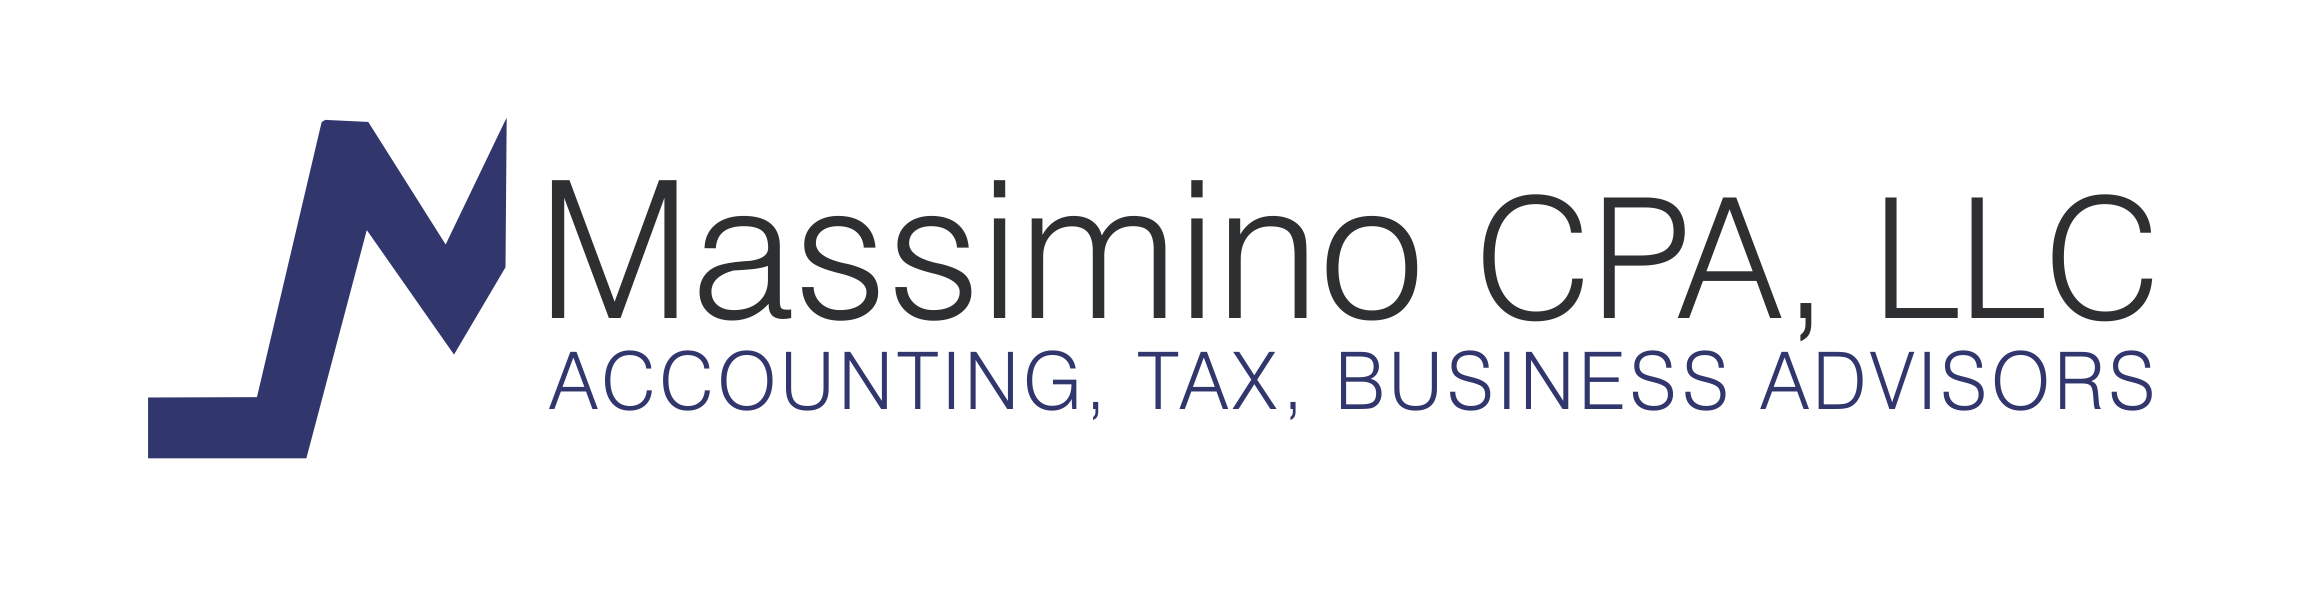 Lowell, MA CPA Firm | Employment Opportunities Page | Massimino CPA, LLC